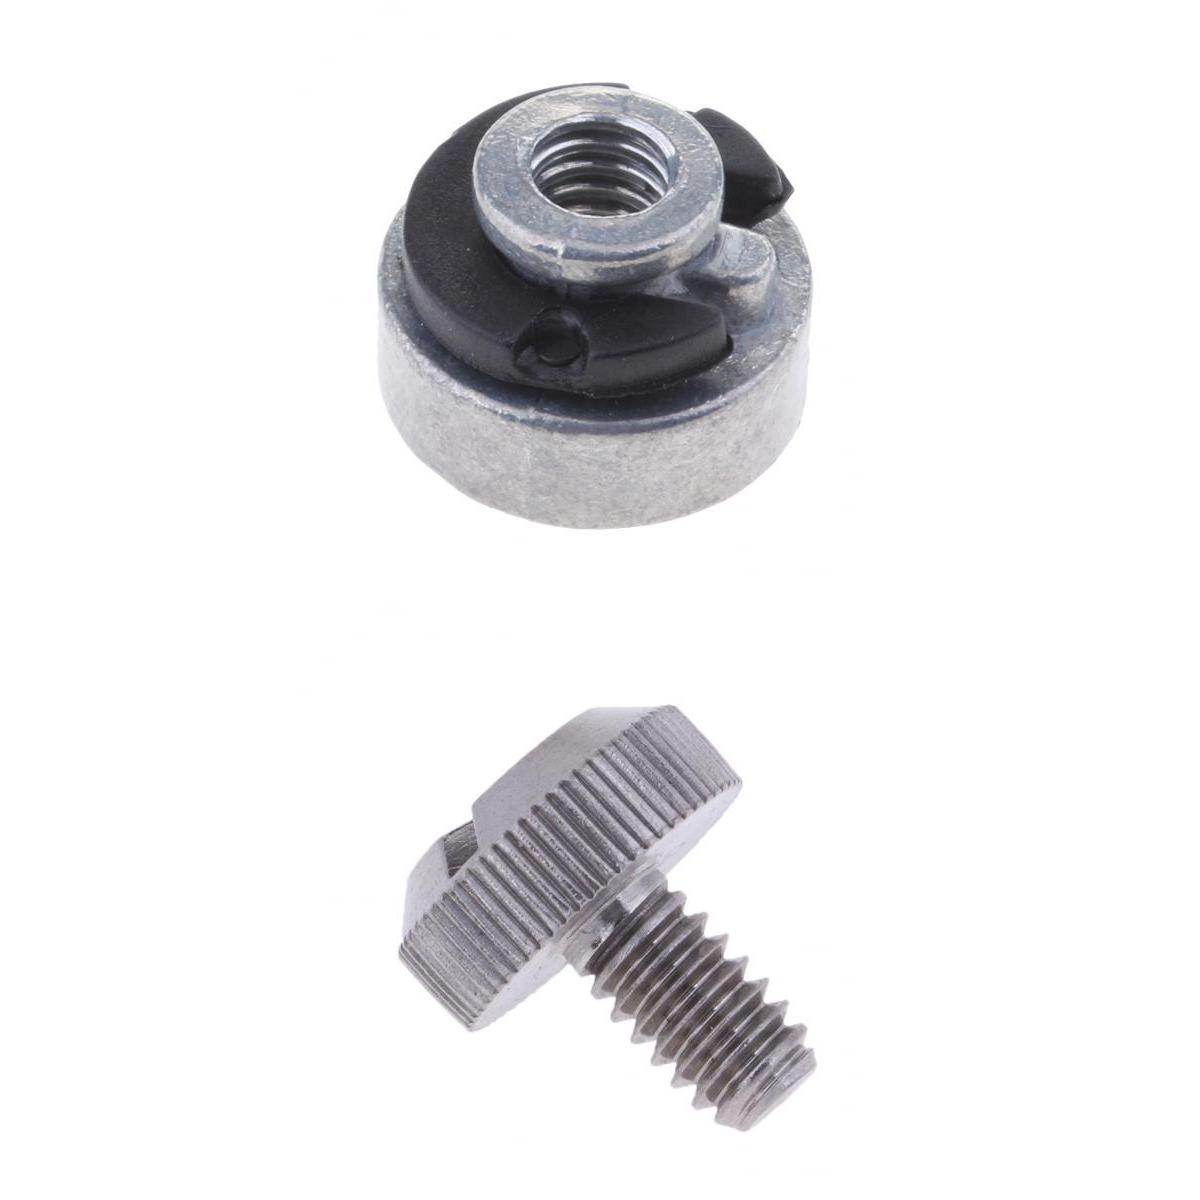 1/4'-20 Aluminium Rear Seat Nut + Stainless Steel Bolt For  Sportster